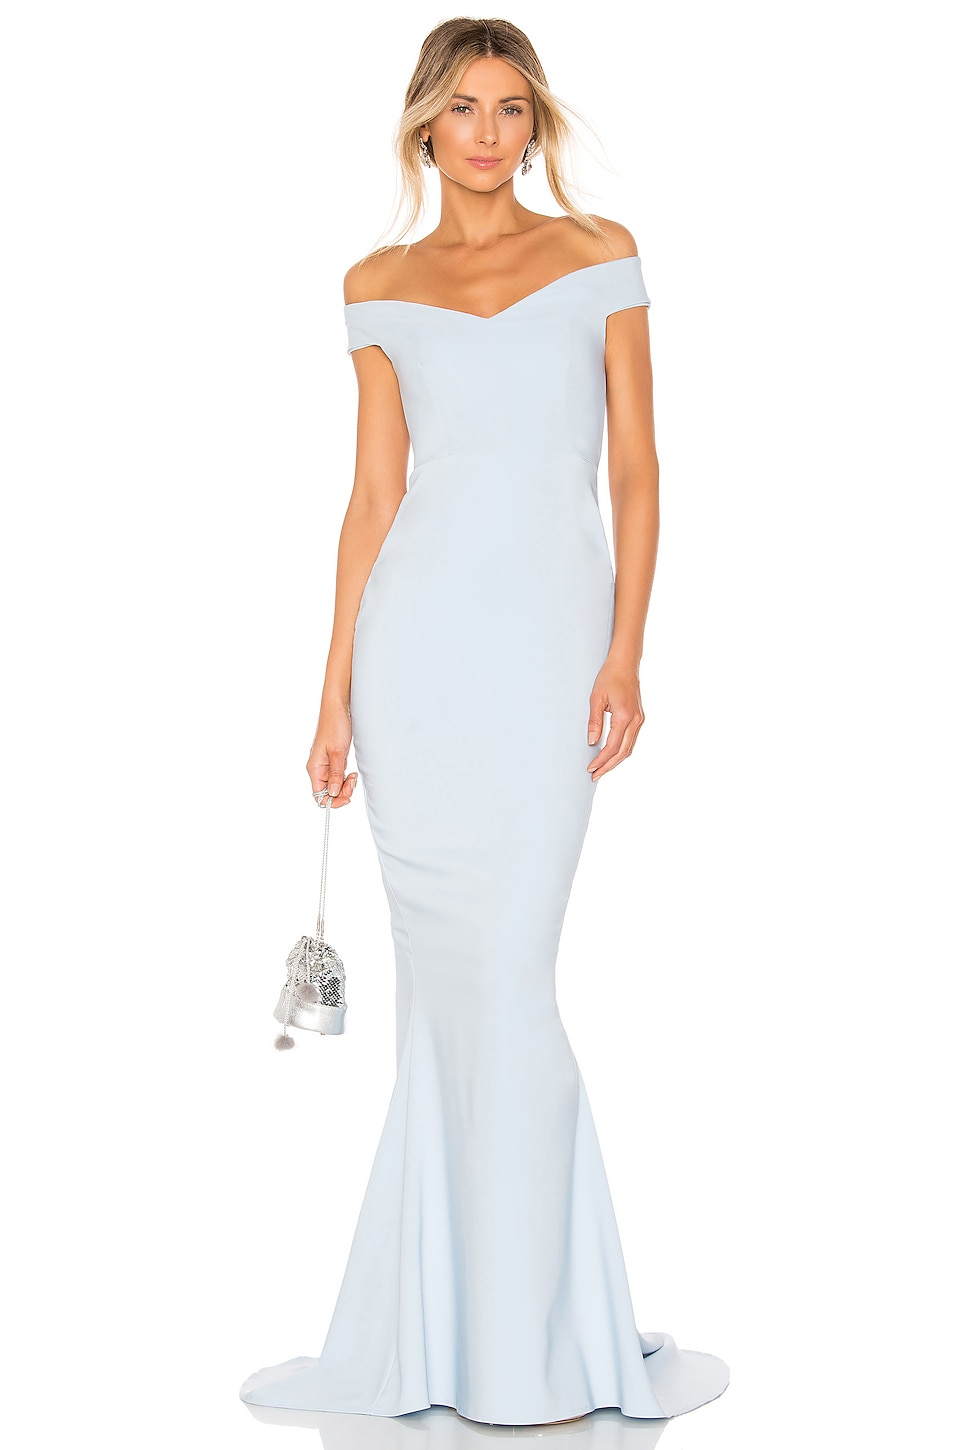 Nookie x REVOLVE Allure Gown in Dusty Blue